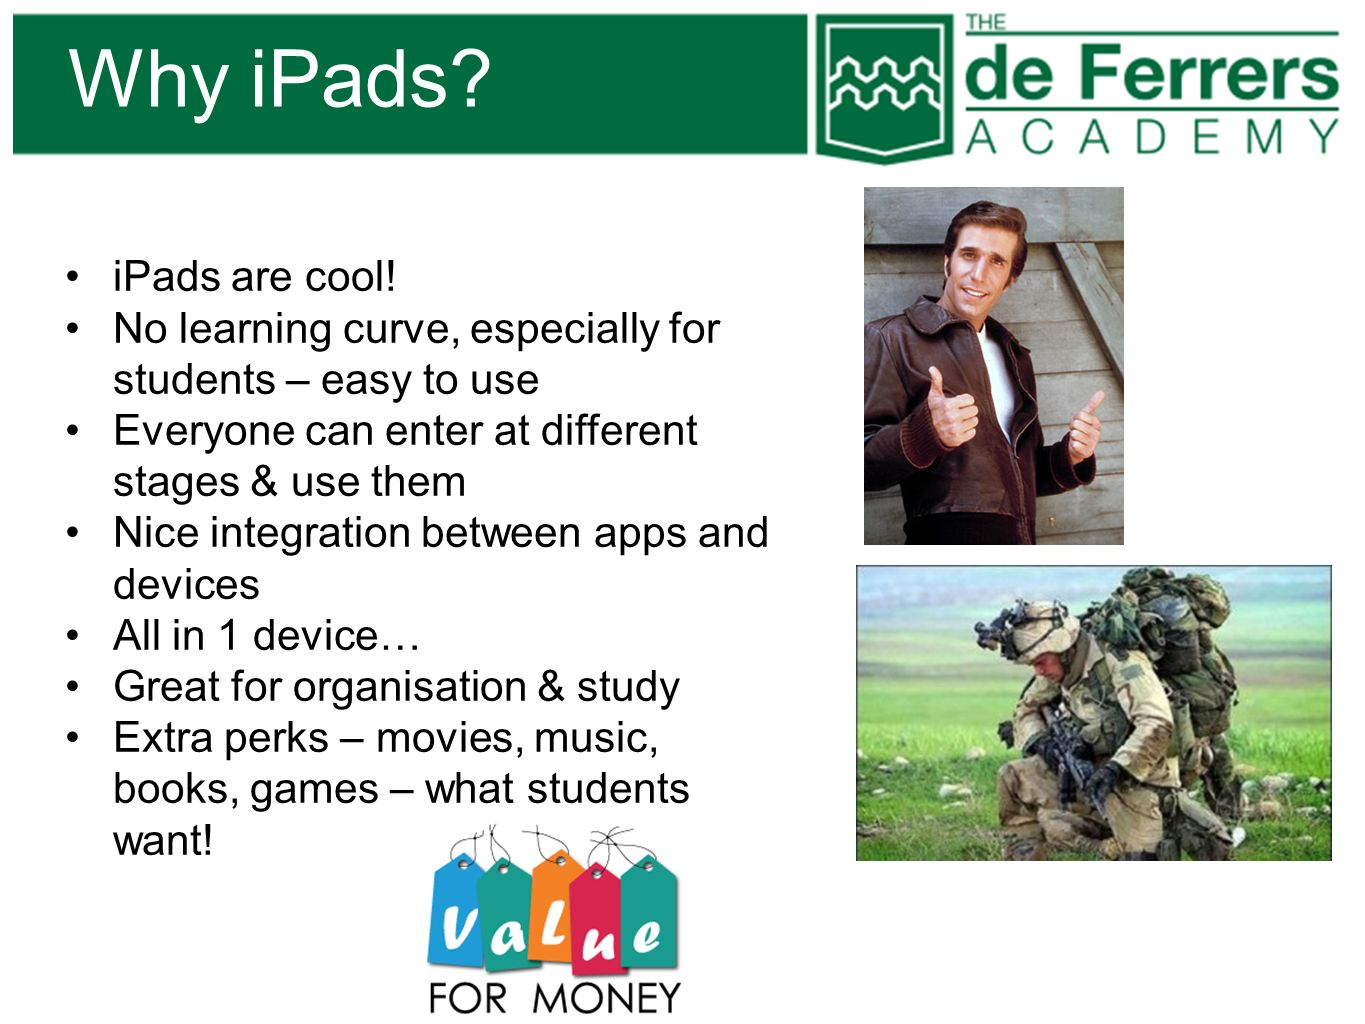 Why iPads iPads are cool!